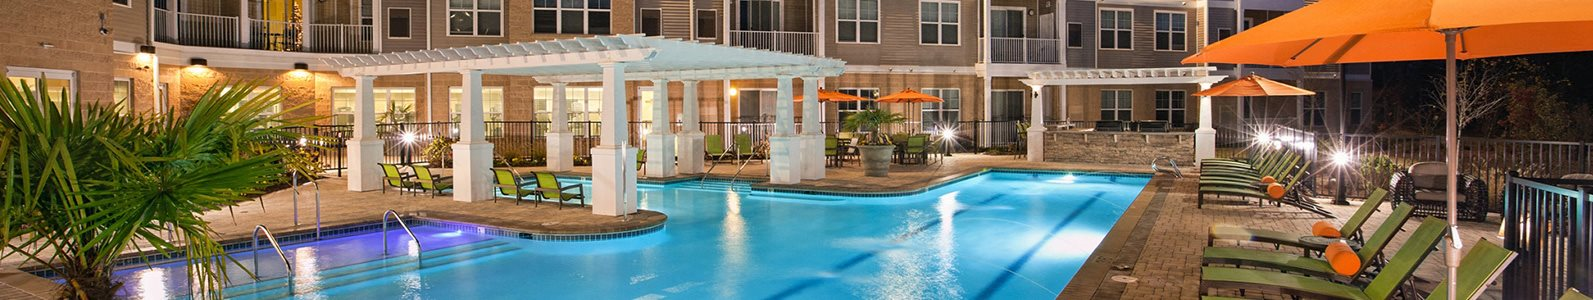 Solace Apartments Pool